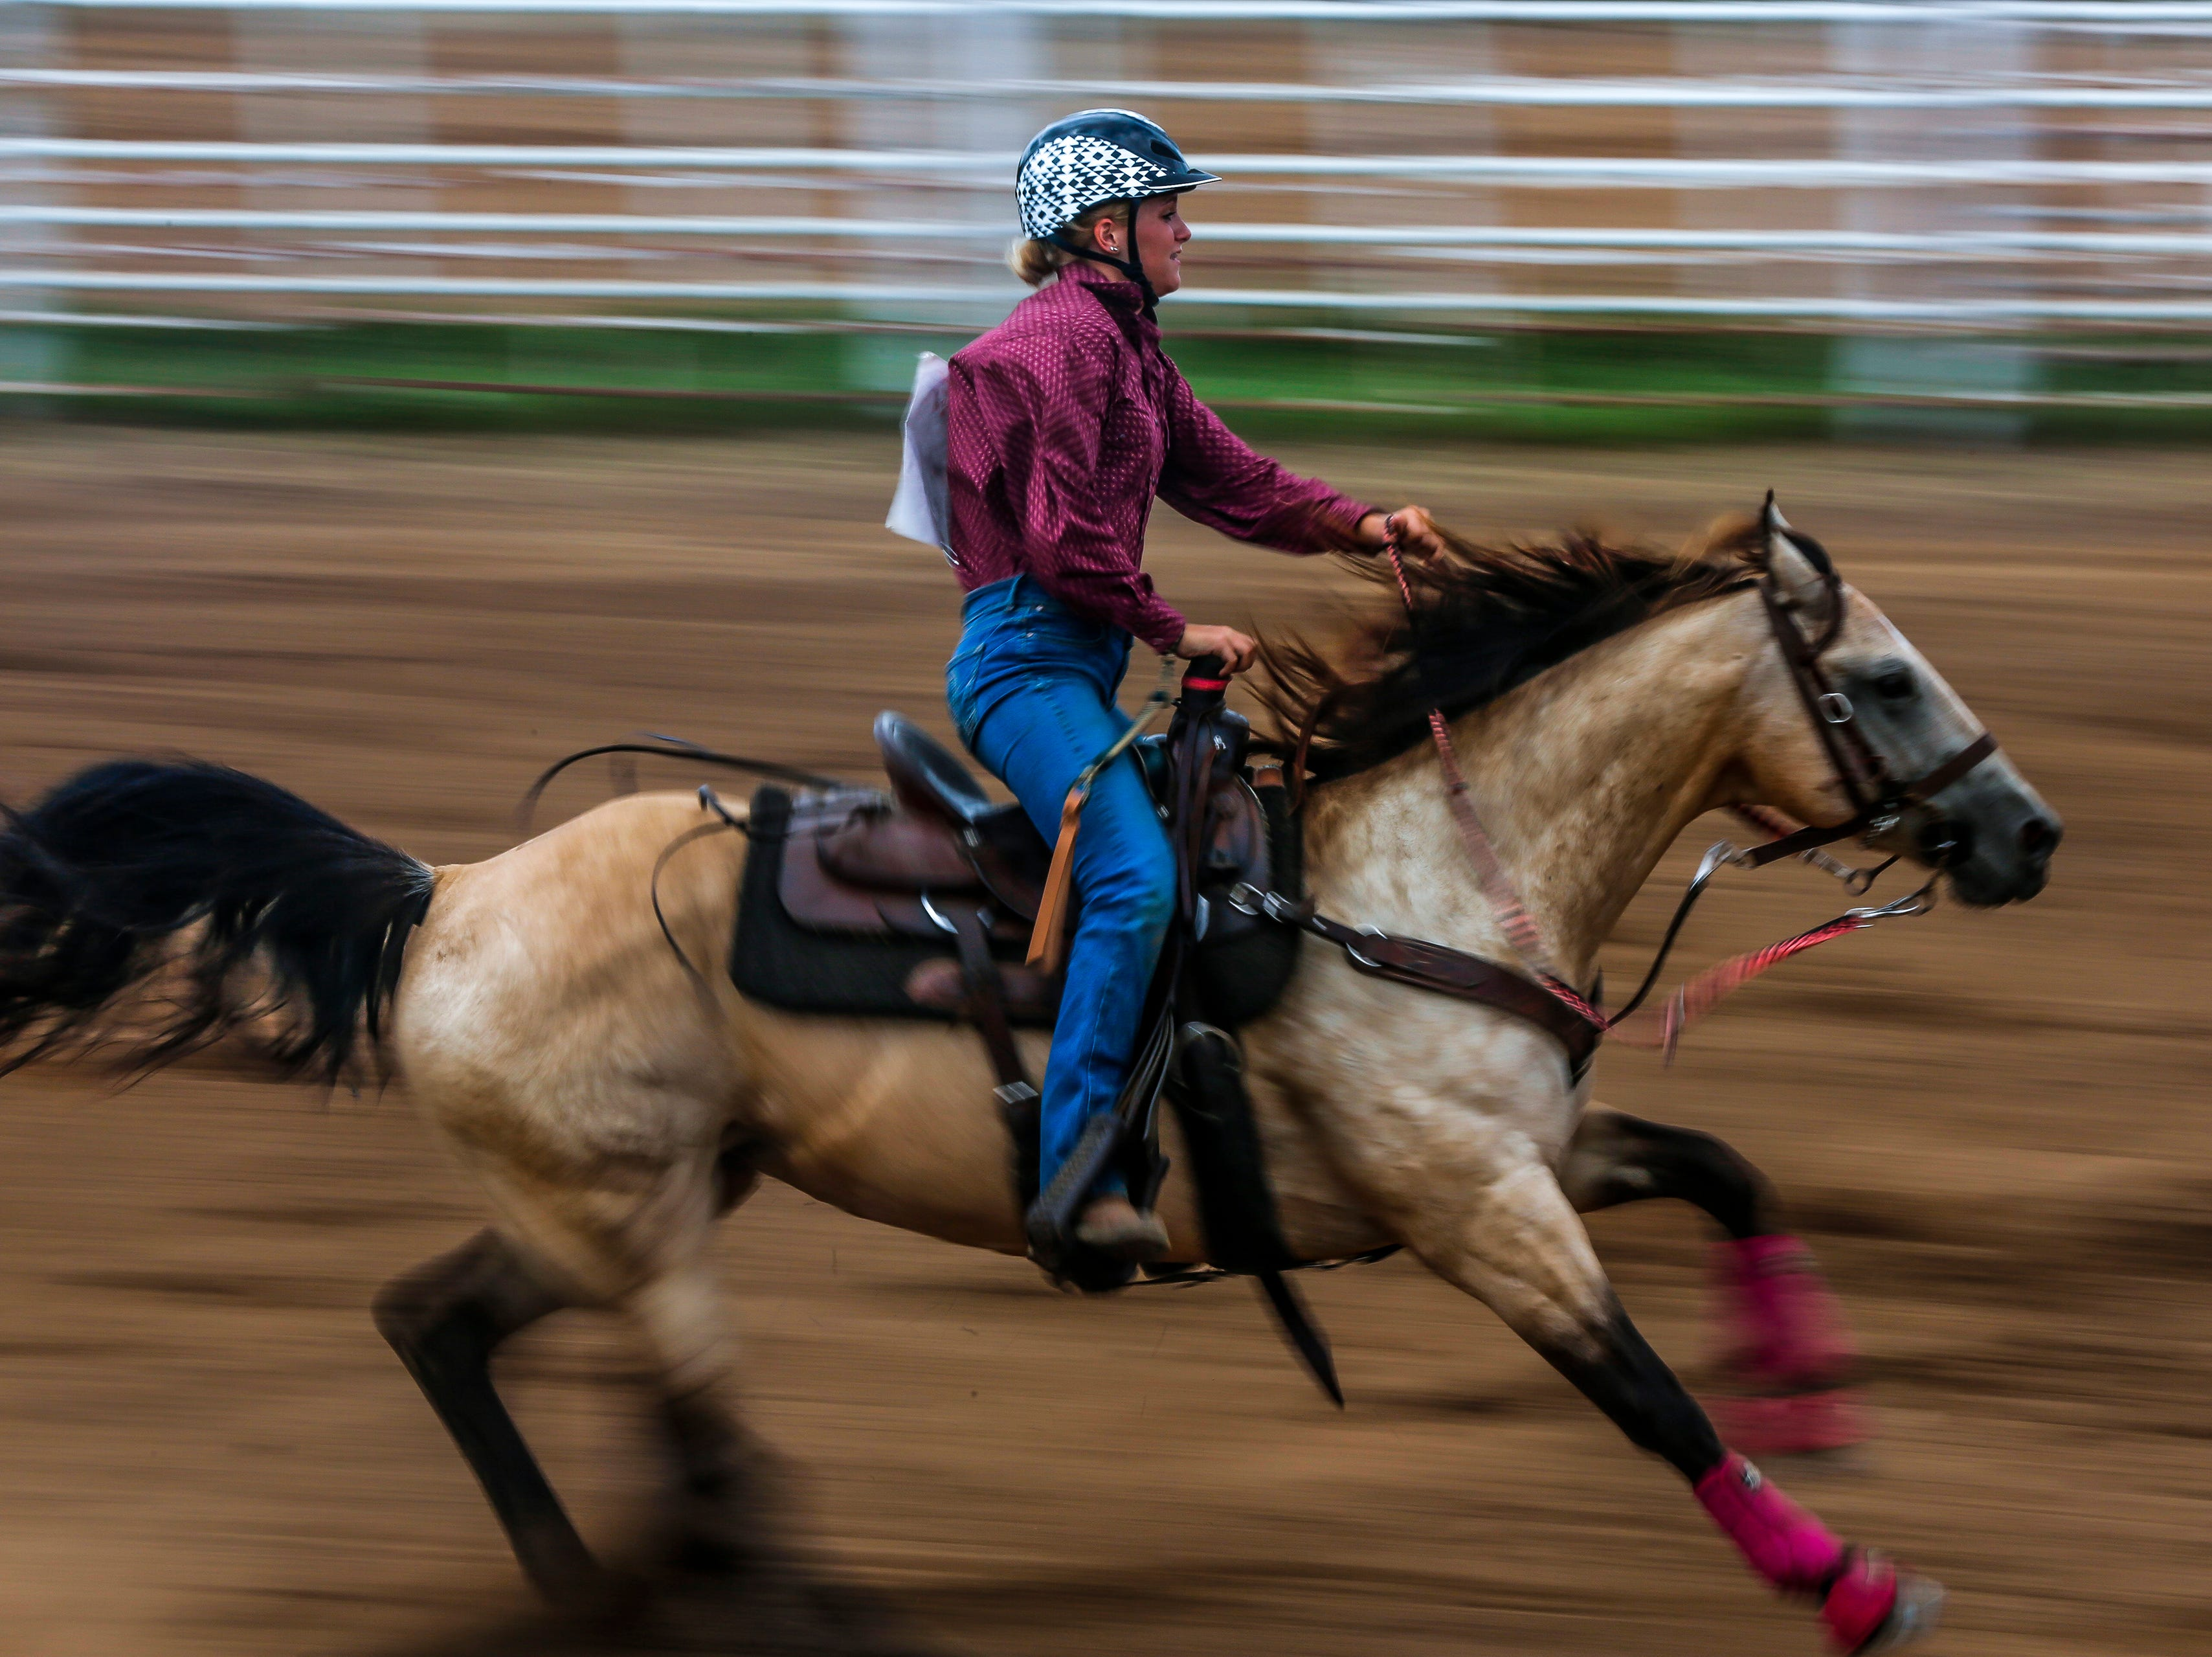 A rider competes in the barrel racing competition during the Amherst Little Britches Wisconsin Rodeo in Amherst, Wis., August 17, 2018.